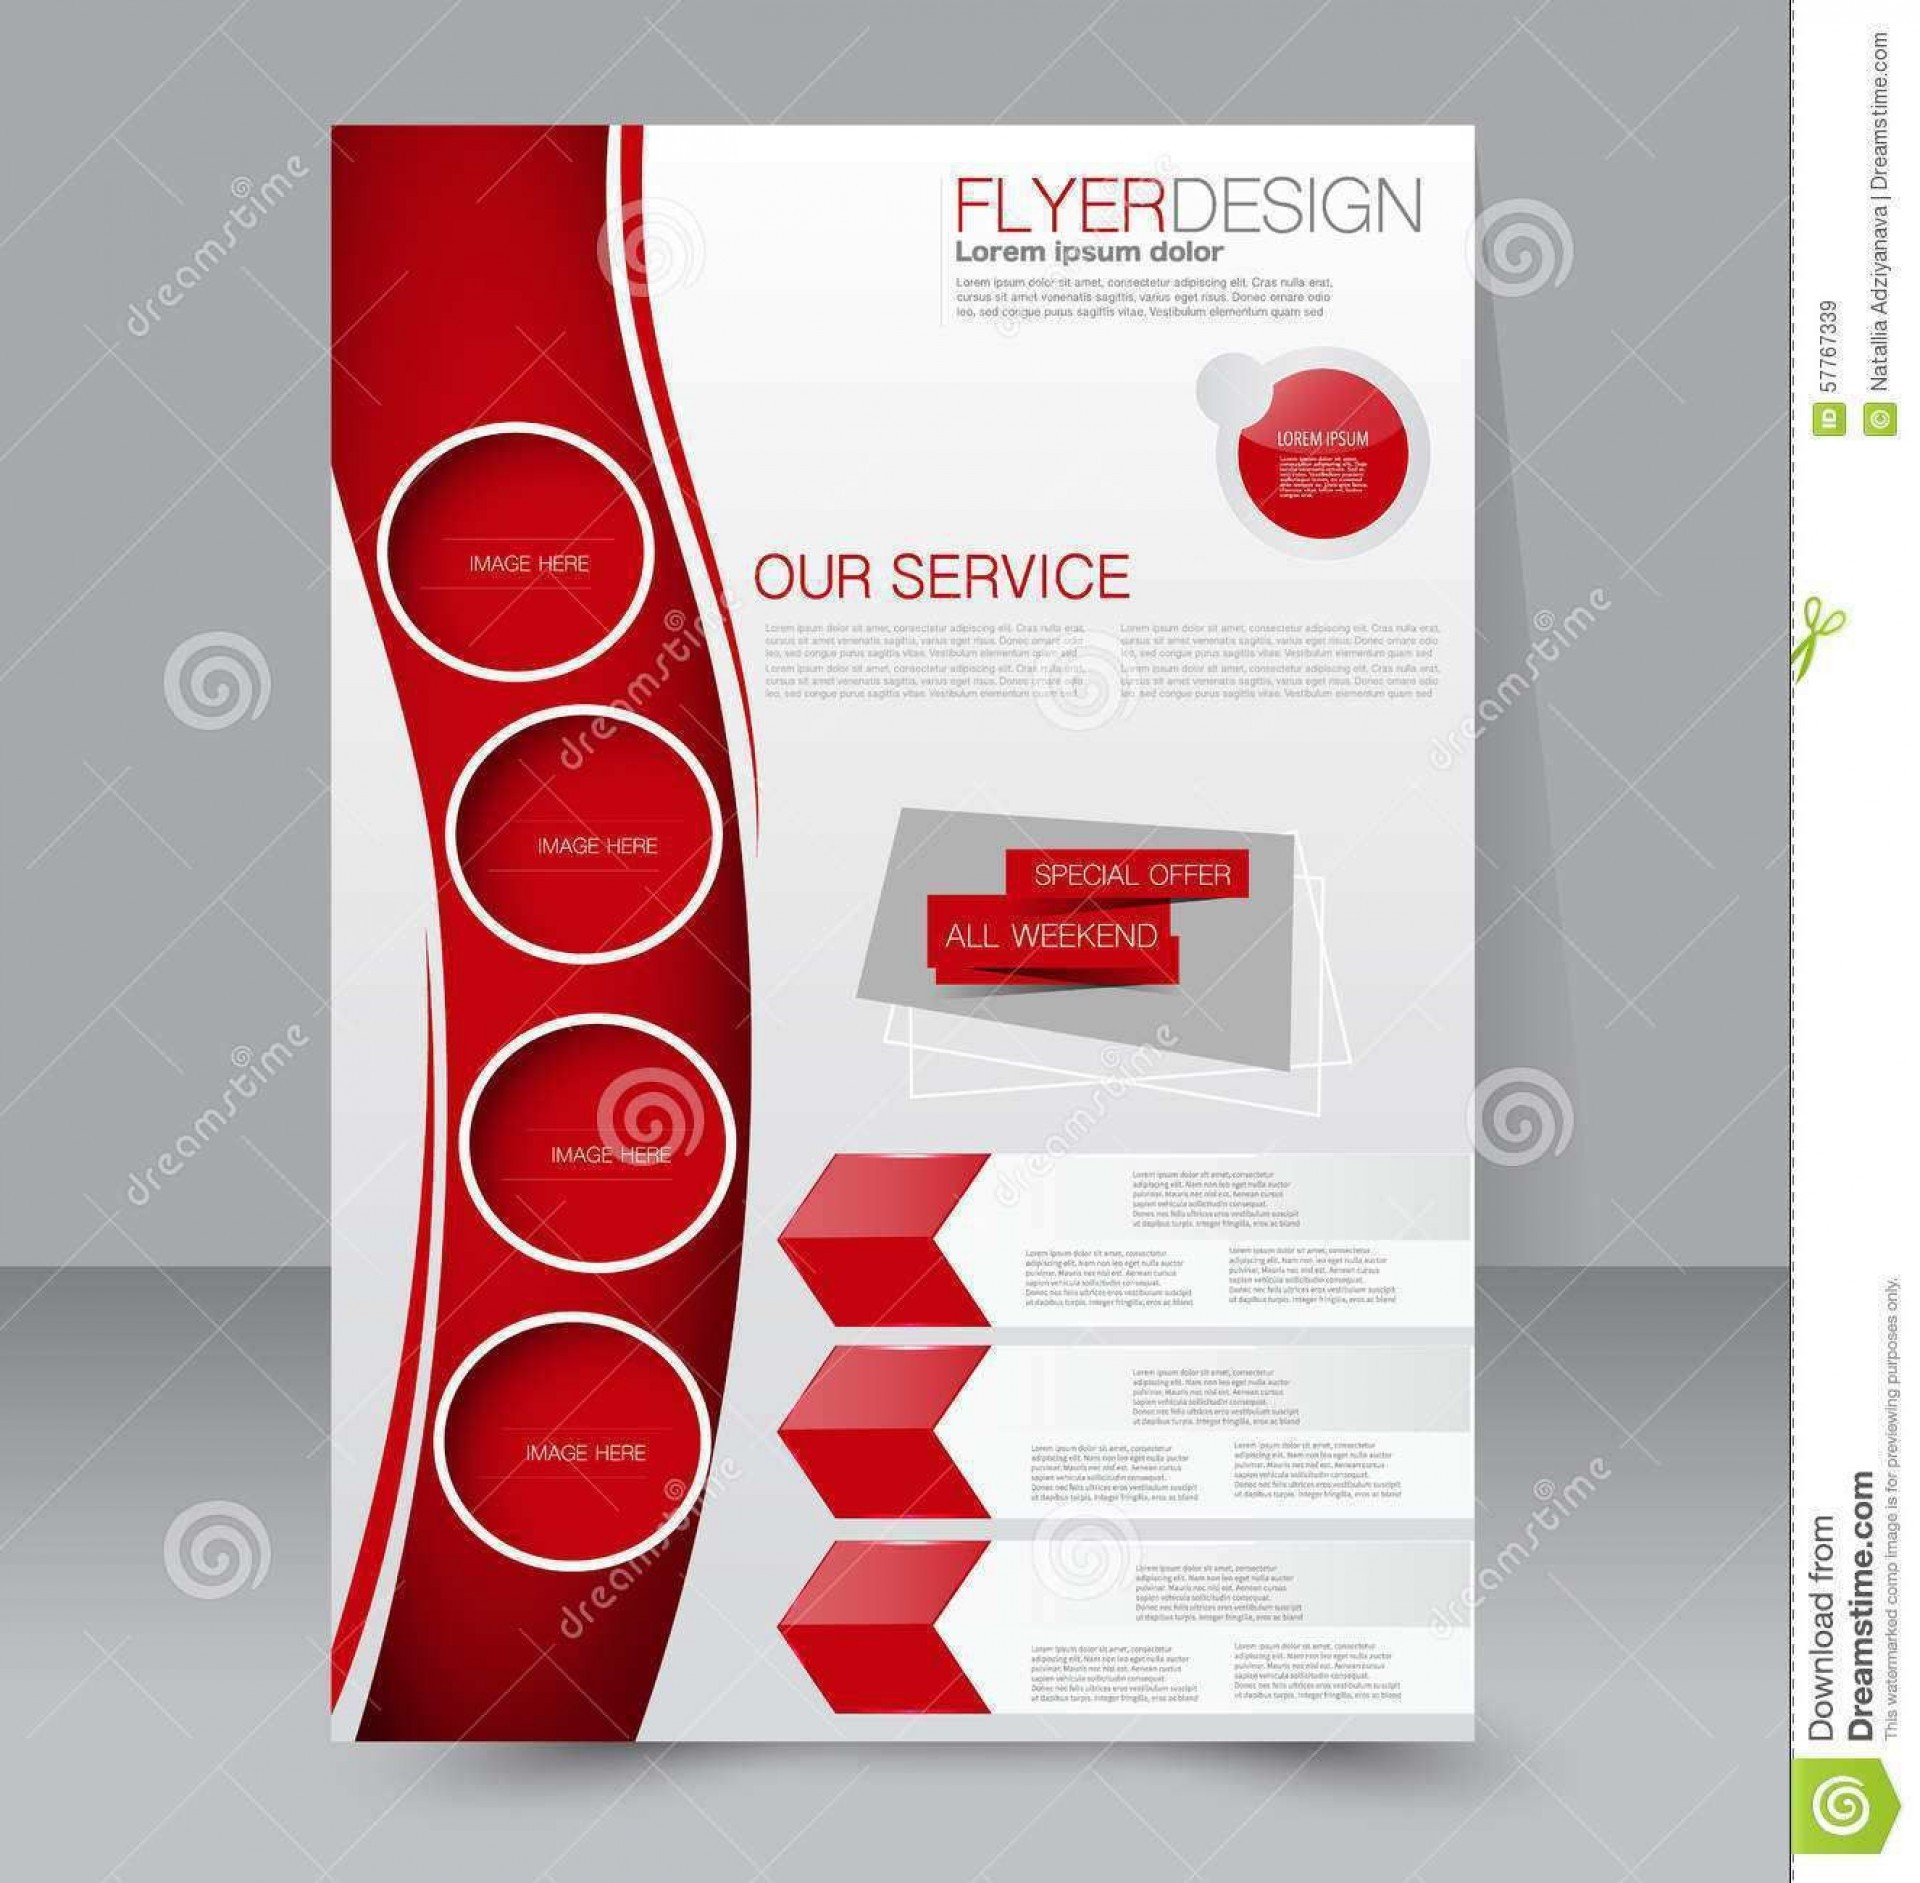 003 Wondrou Free Brochure Template Download Highest Quality  Psd Tri Fold For Word Corporate Busines1920